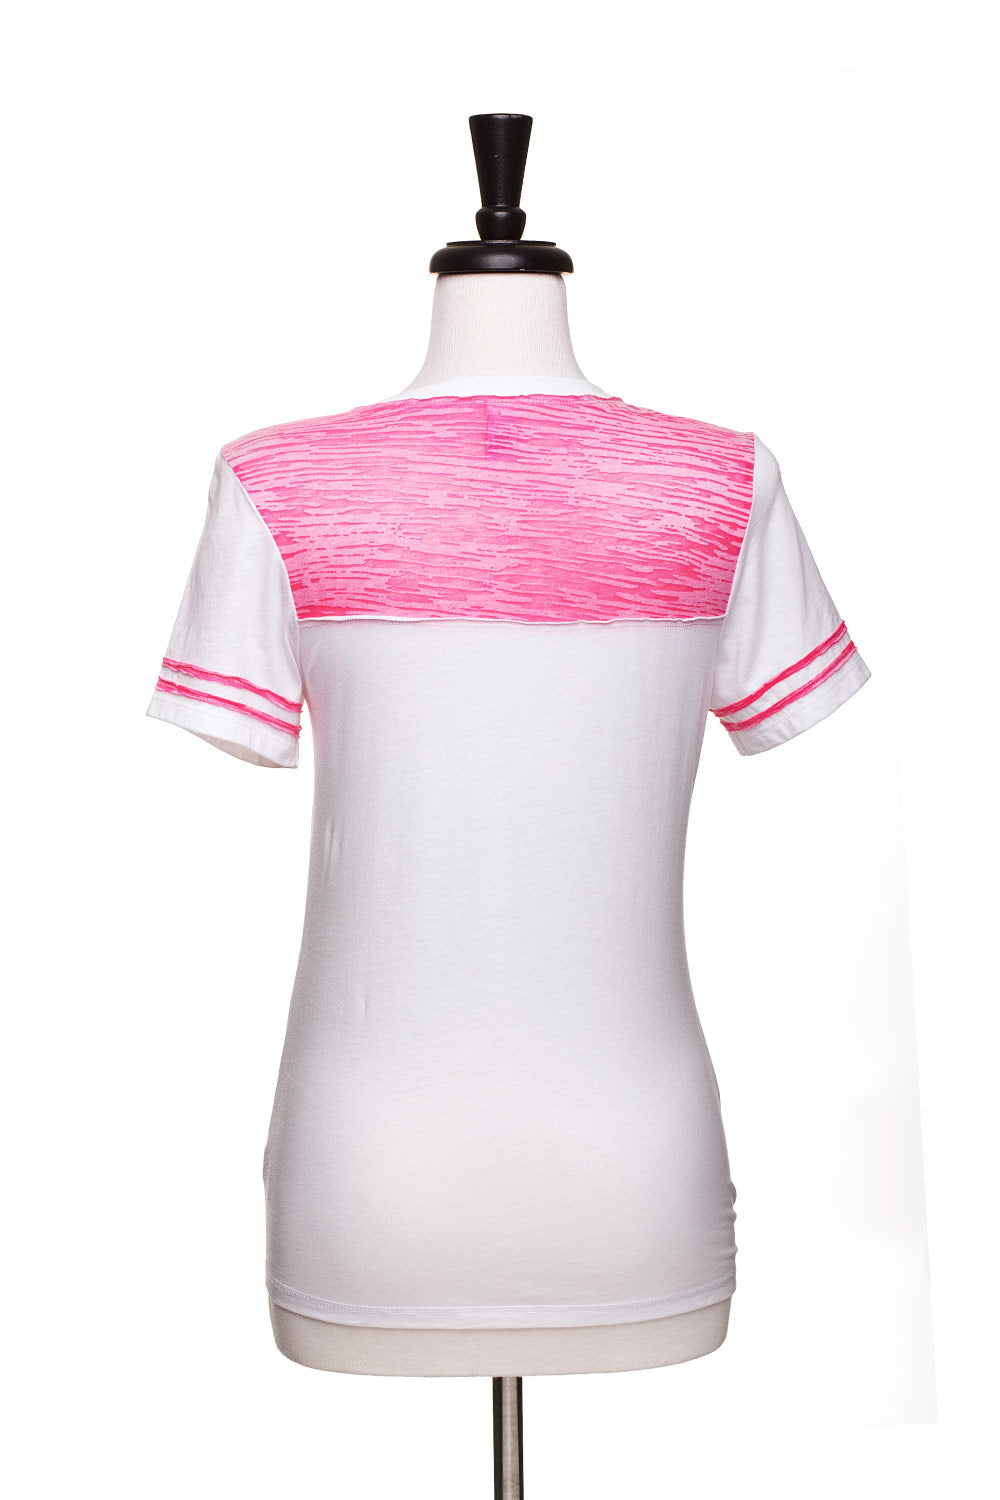 Type 4 Team Spirit Exact-T in Pink